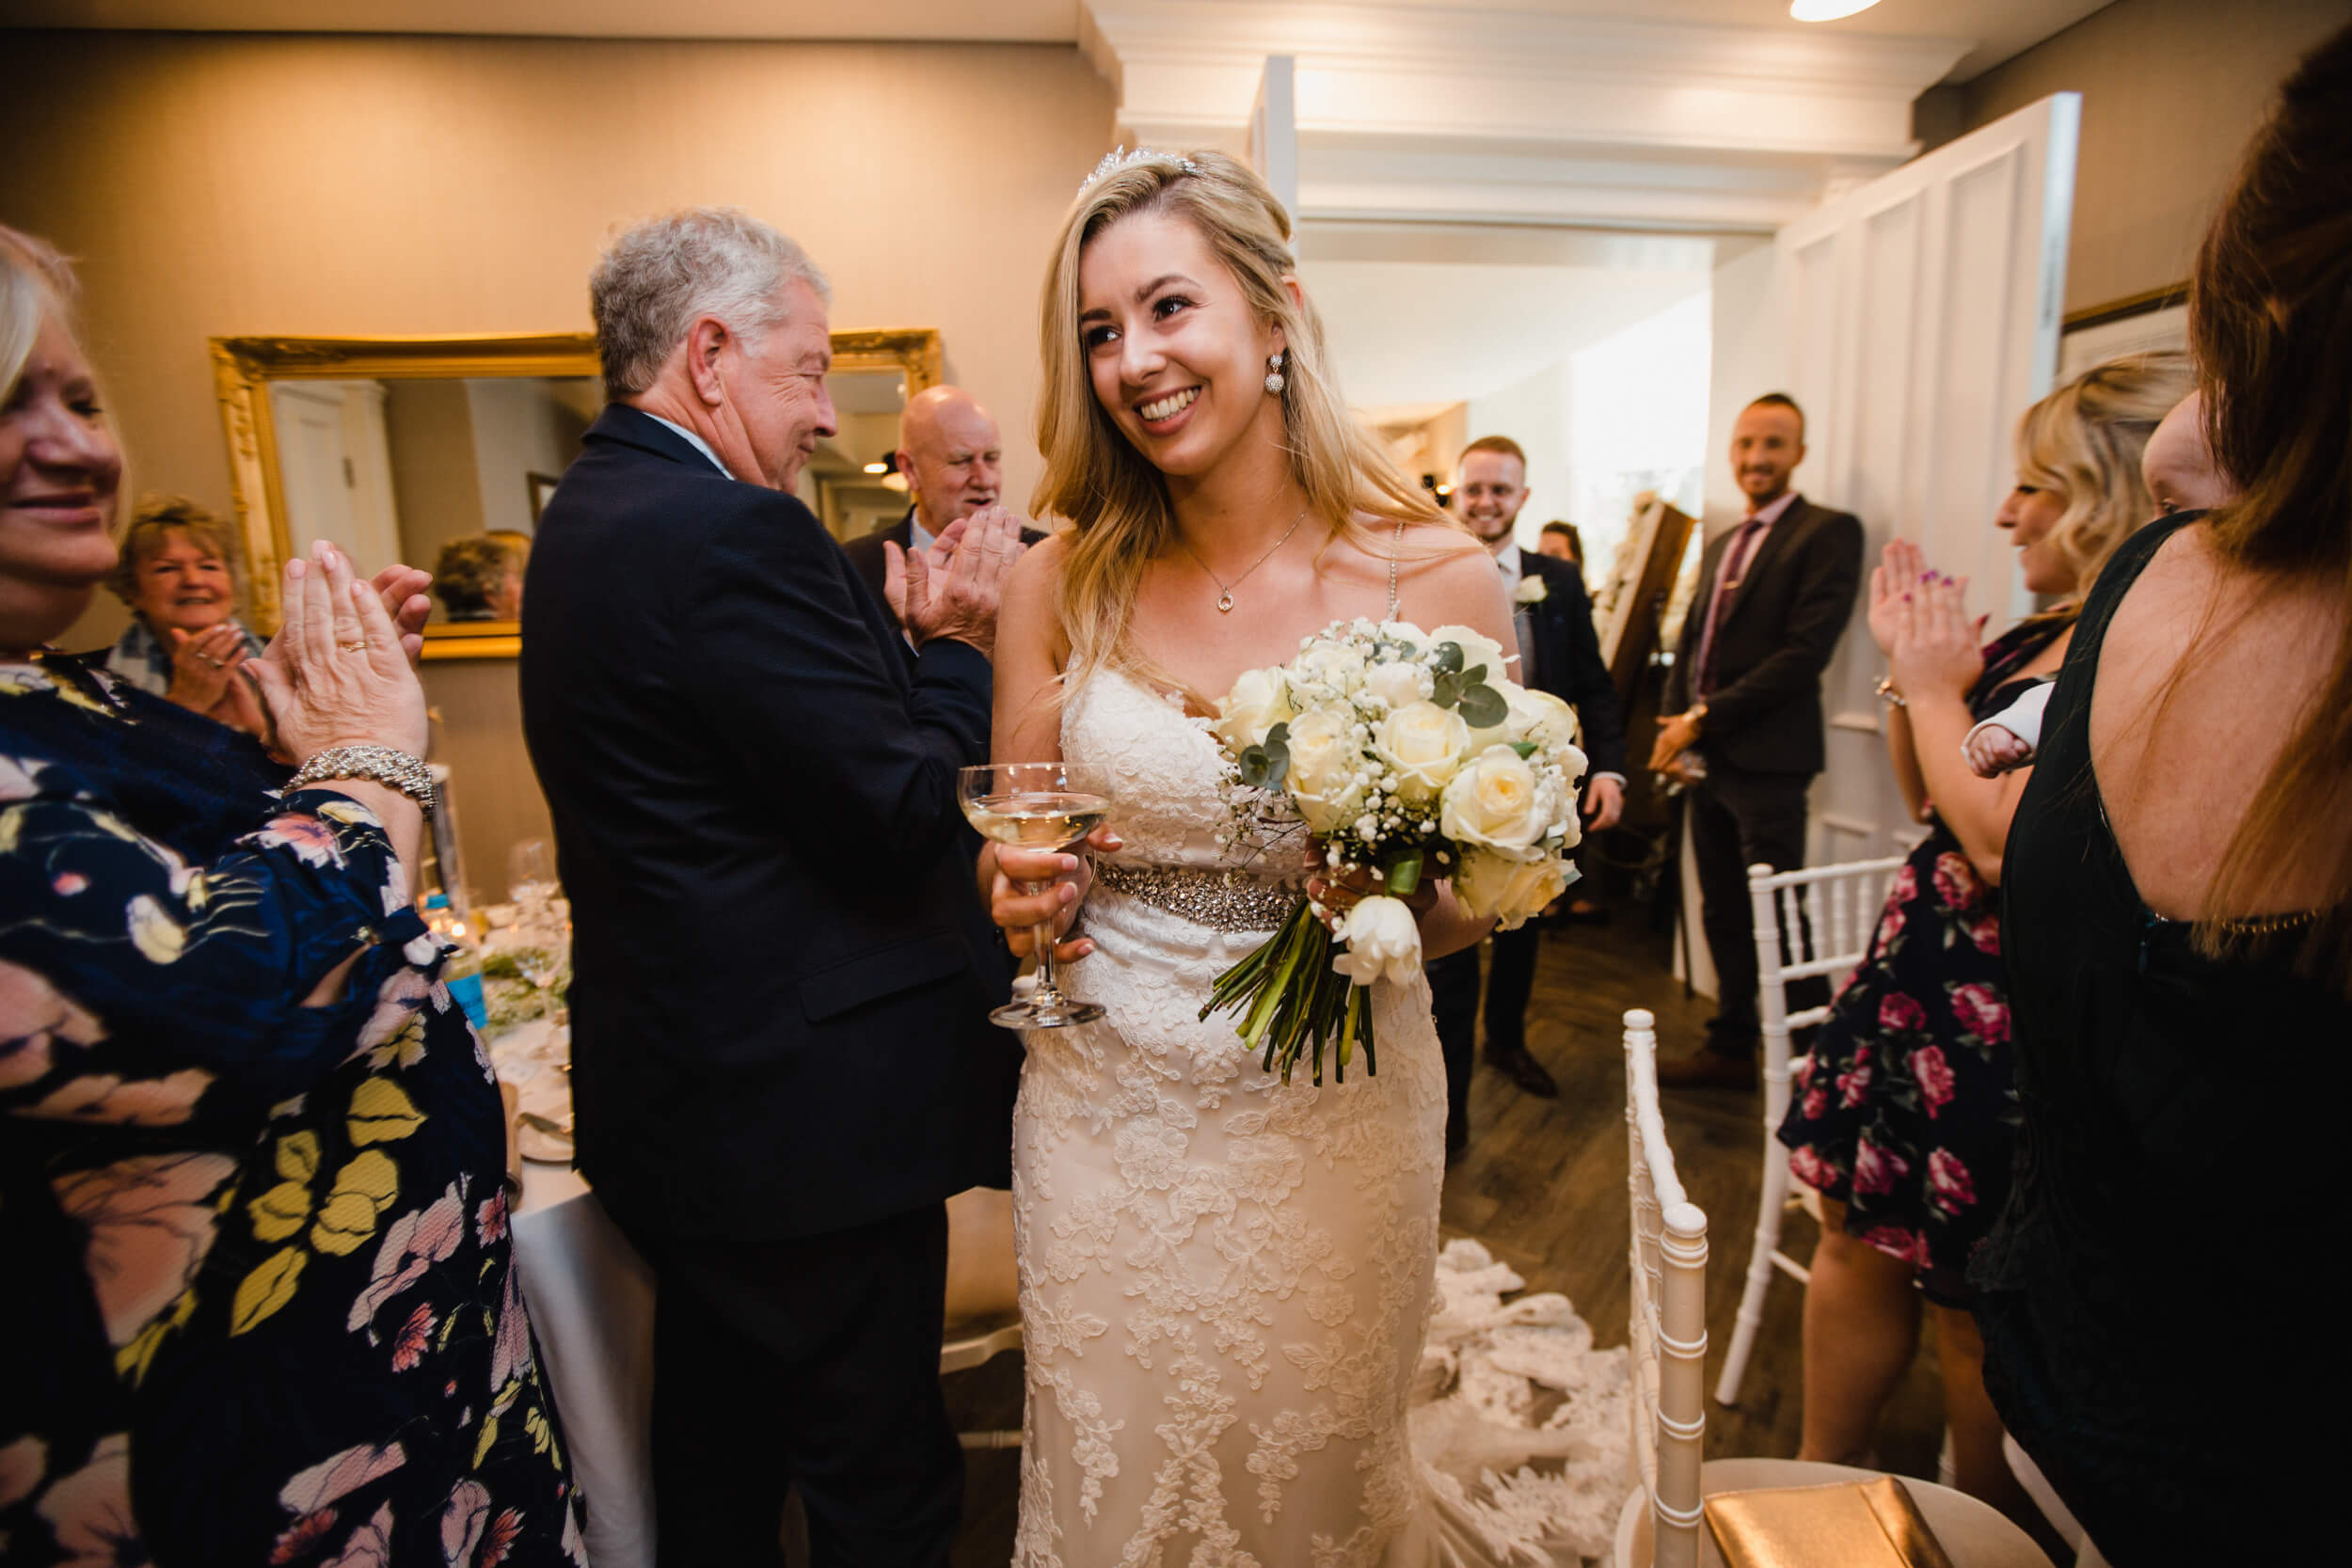 smiling bride holding champagne and bouquet entering wedding breakfast room